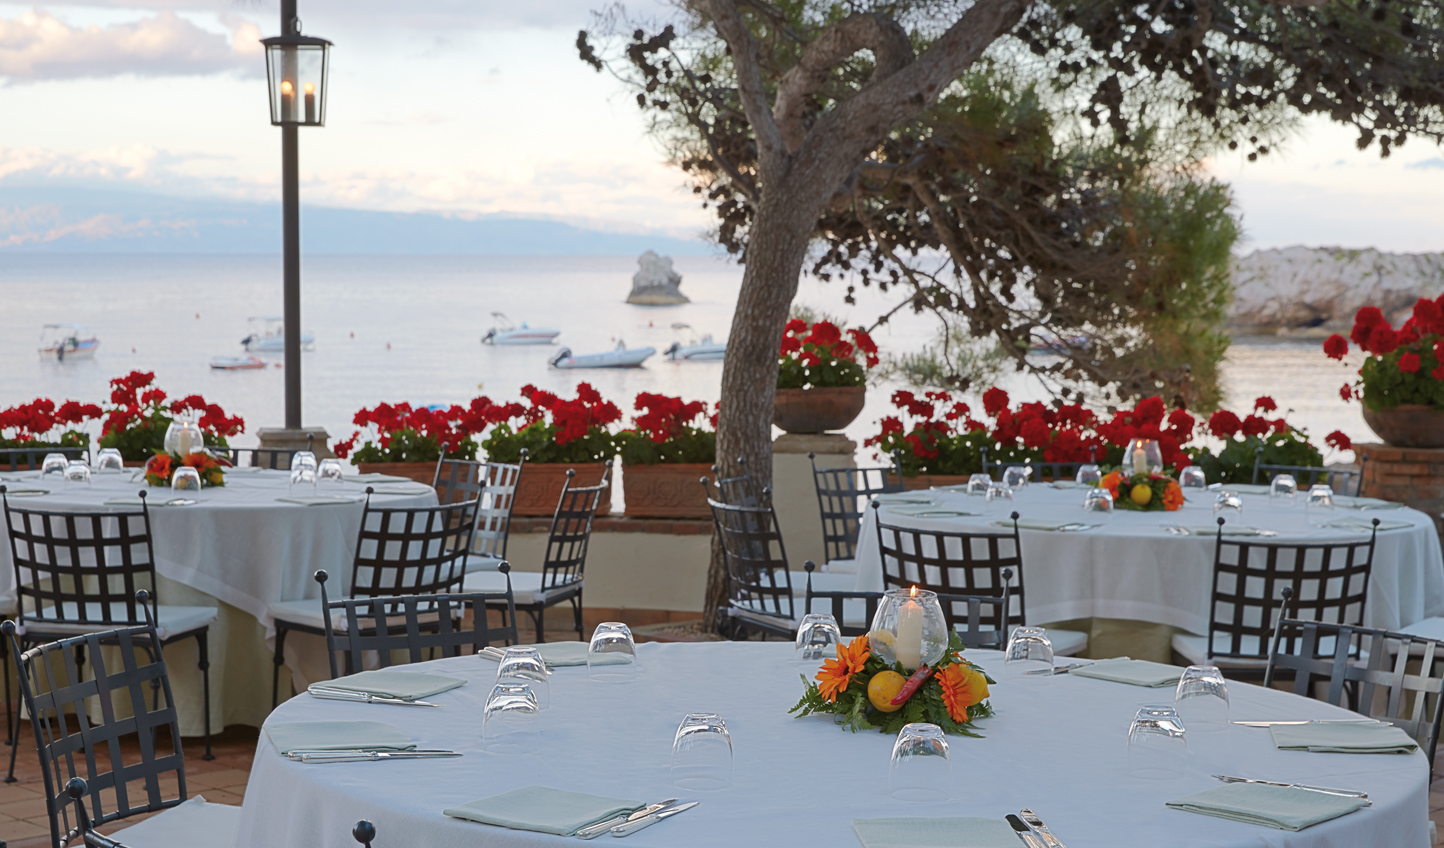 Dine al fresco and watch the sunset